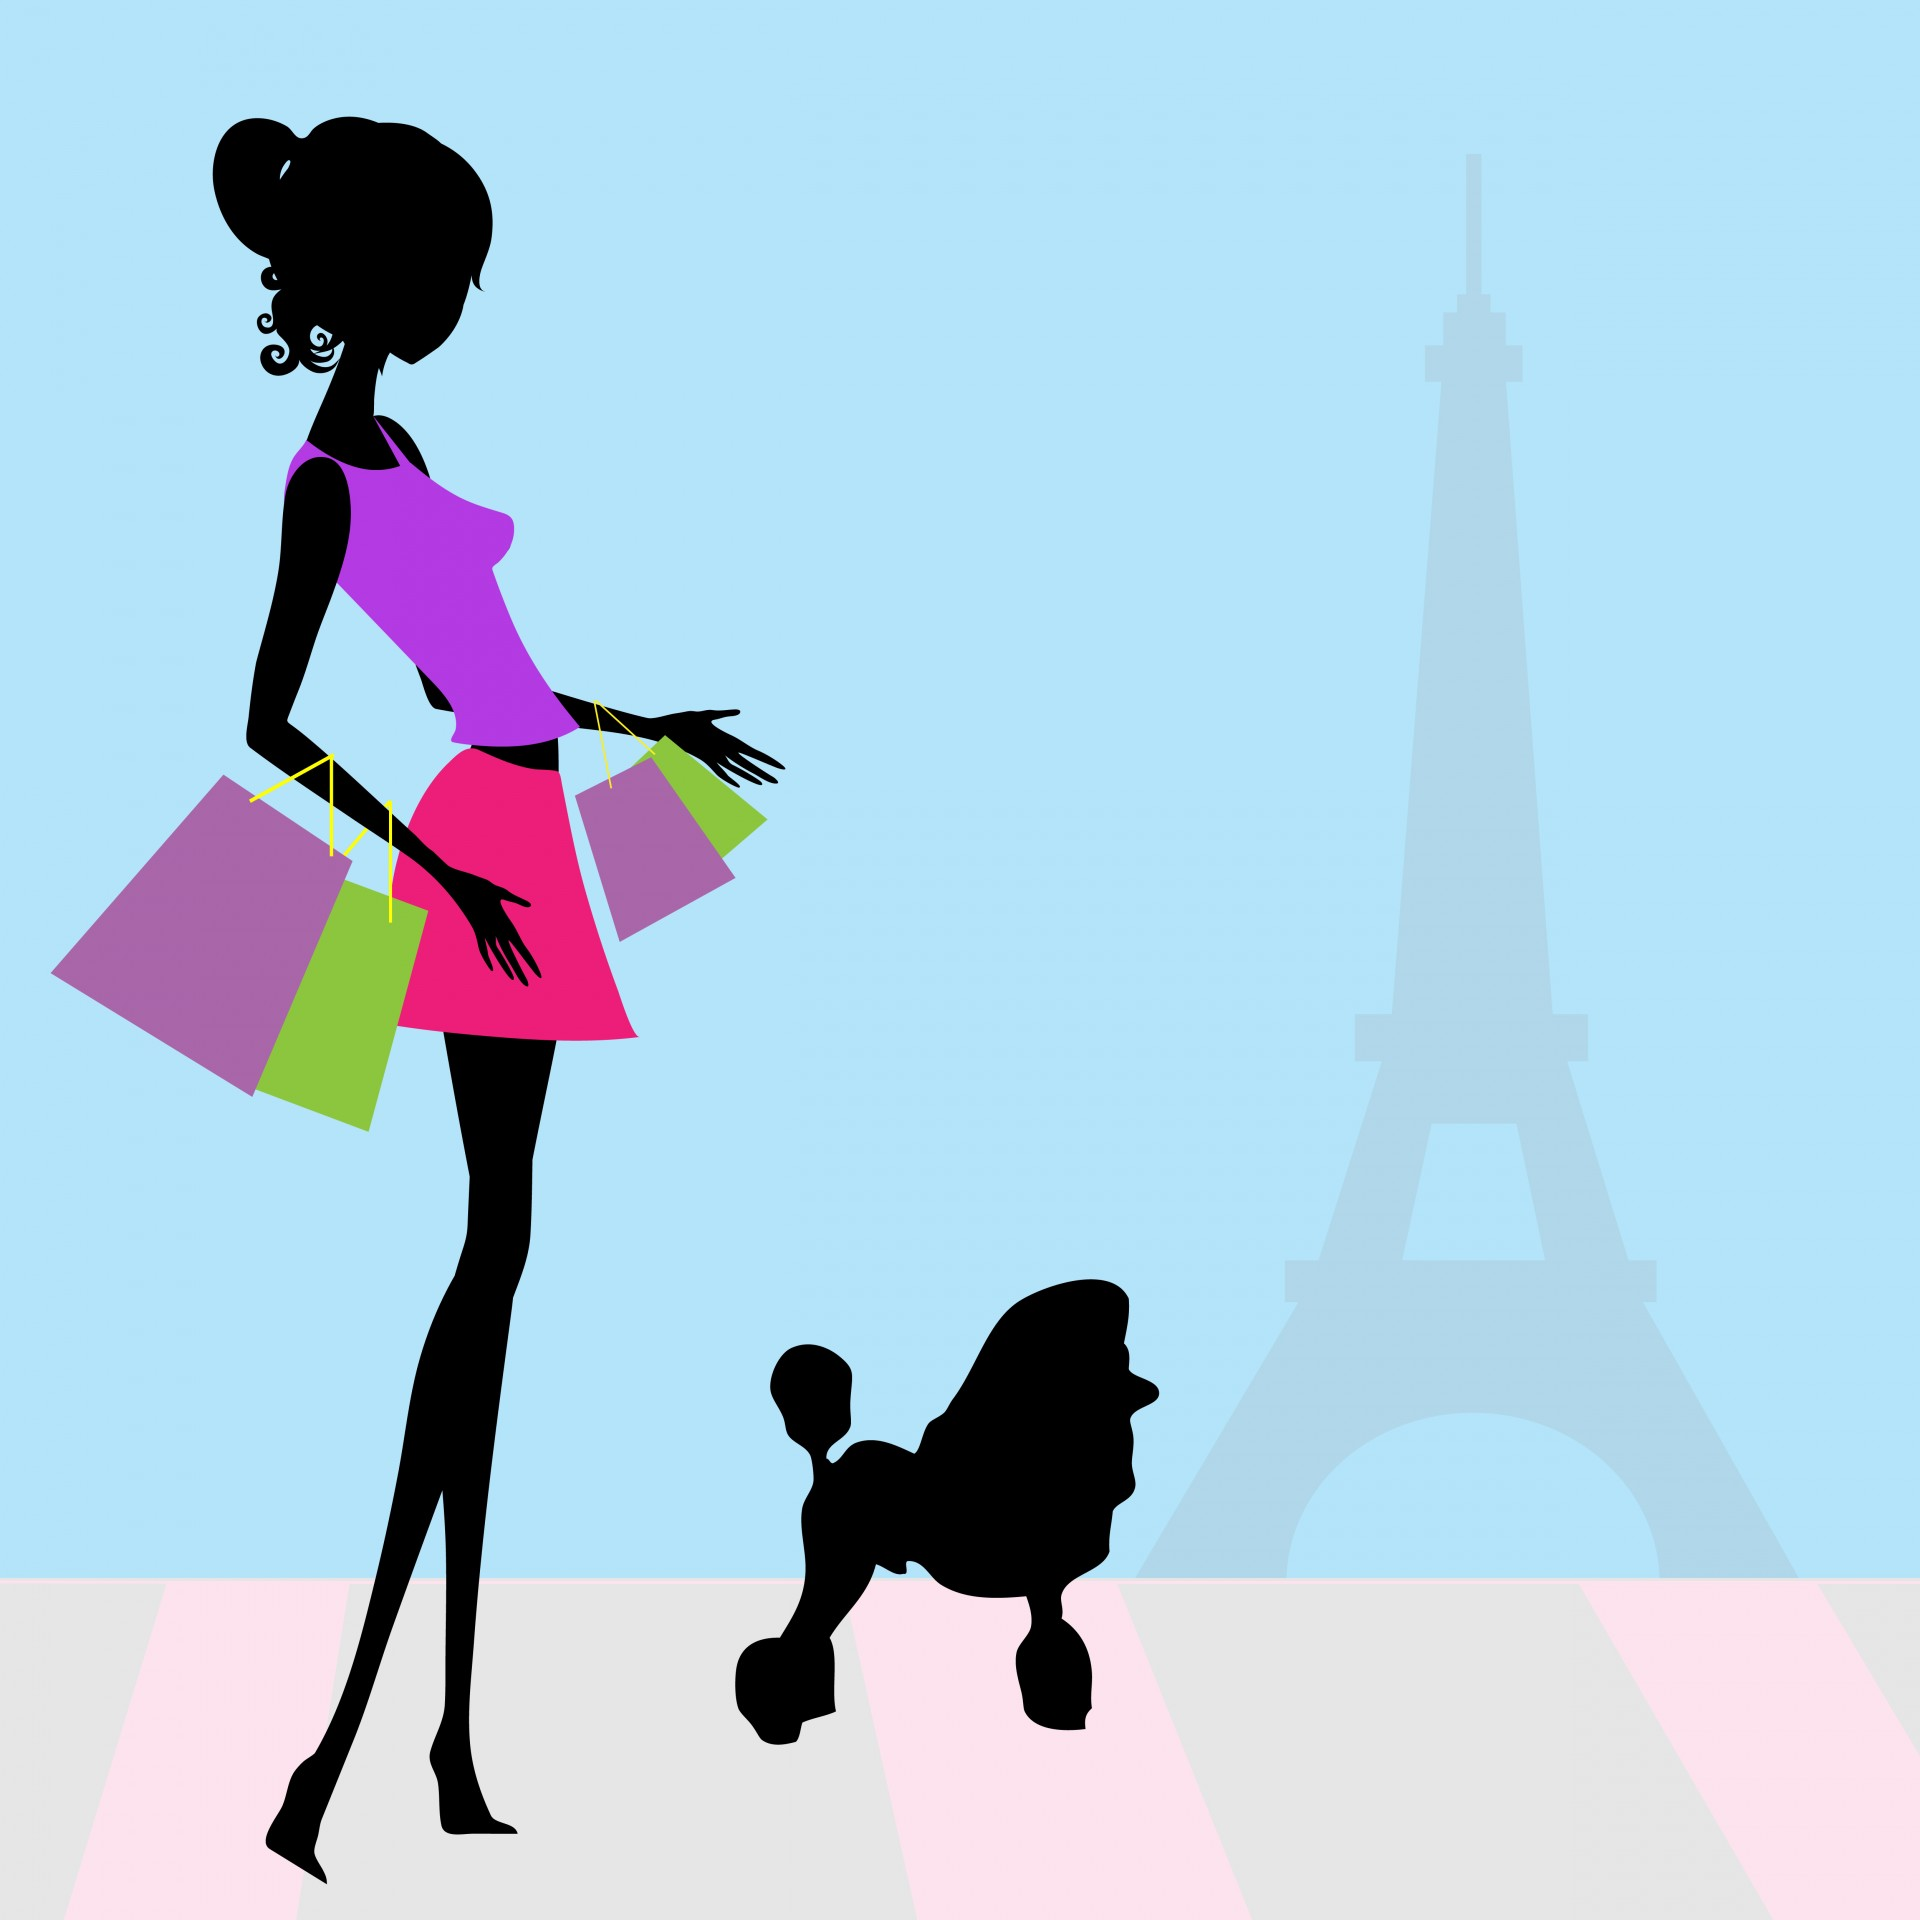 Free download high resolution image - free image free photo free stock image public domain picture -Fashion Woman Shopping Paris